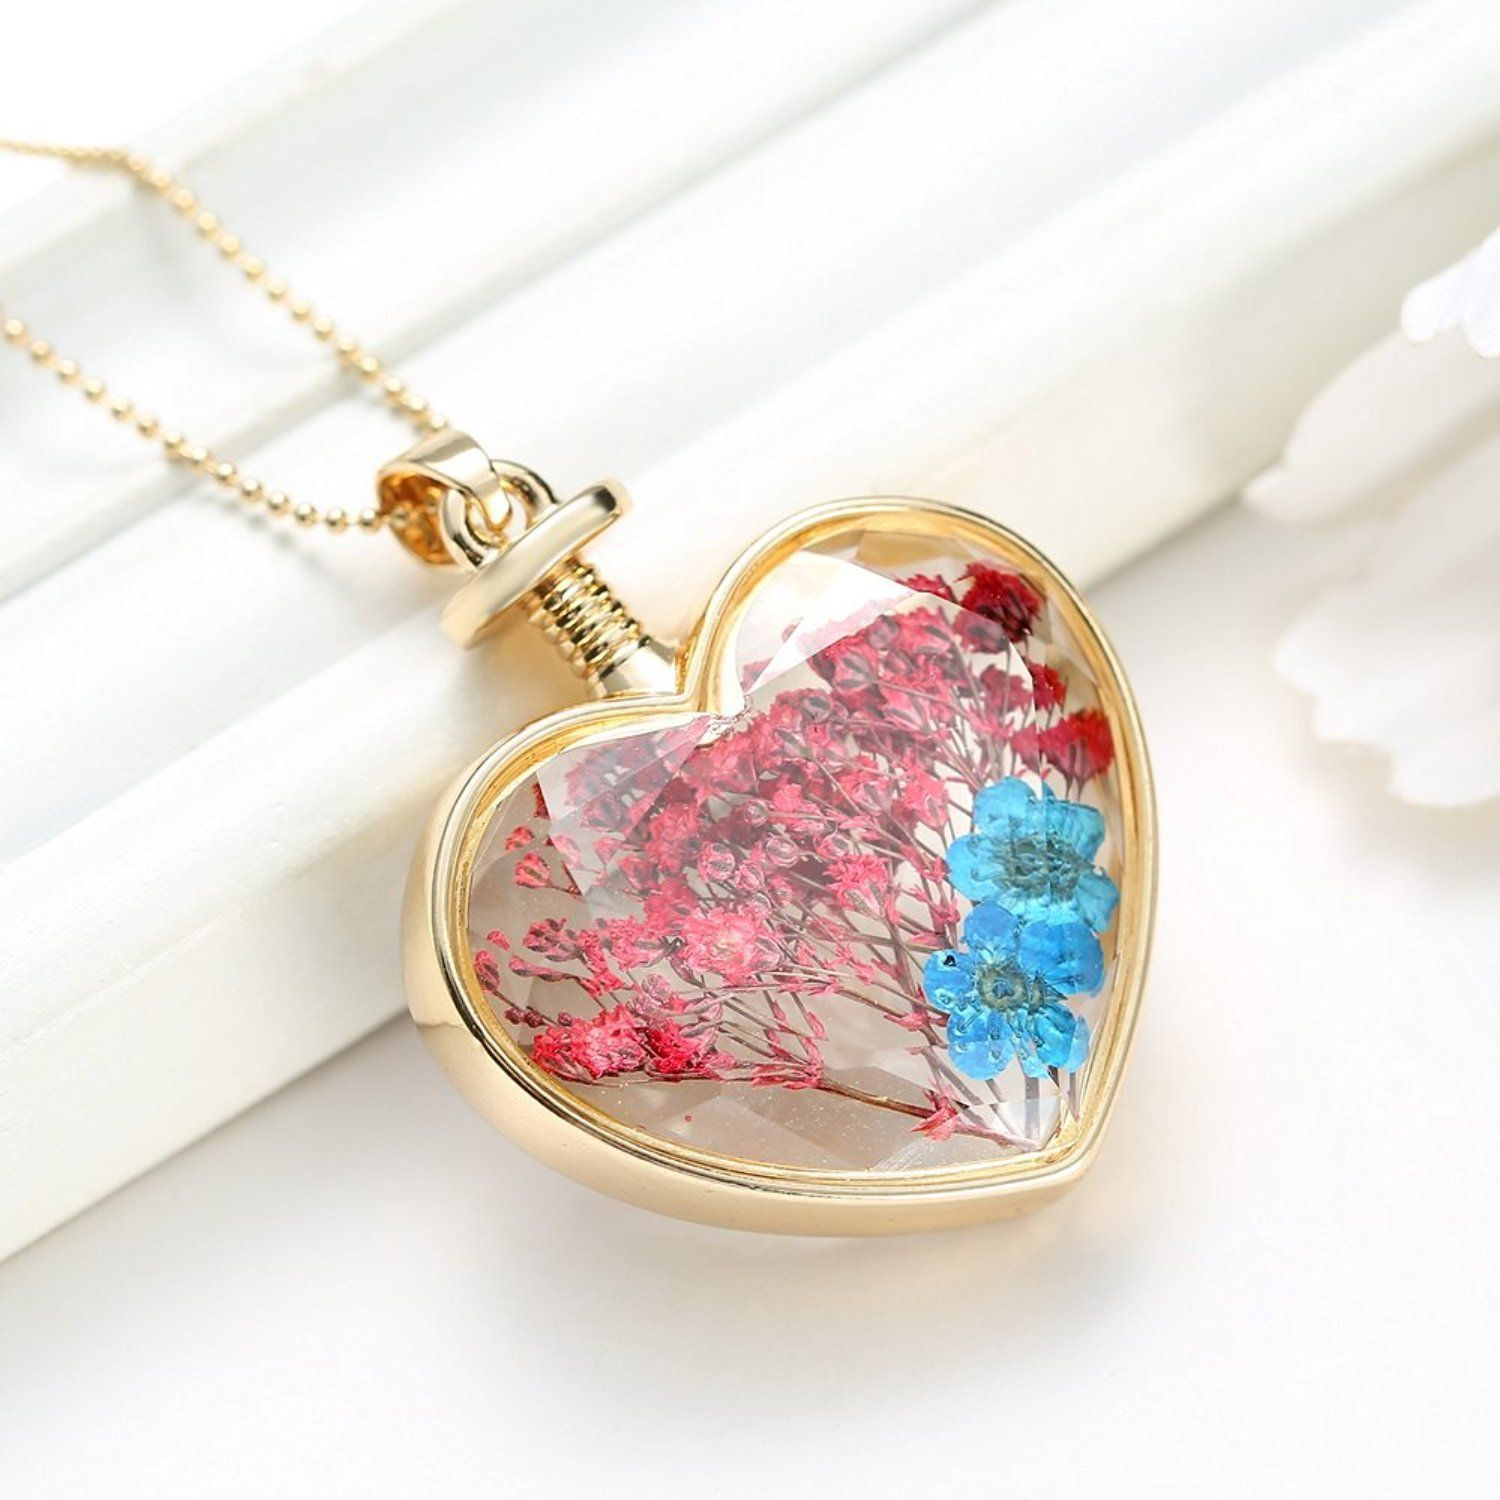 zoom bridesmaid a bhldn in locket gold gifts lockets bridal cheap party etta productoptionids xl